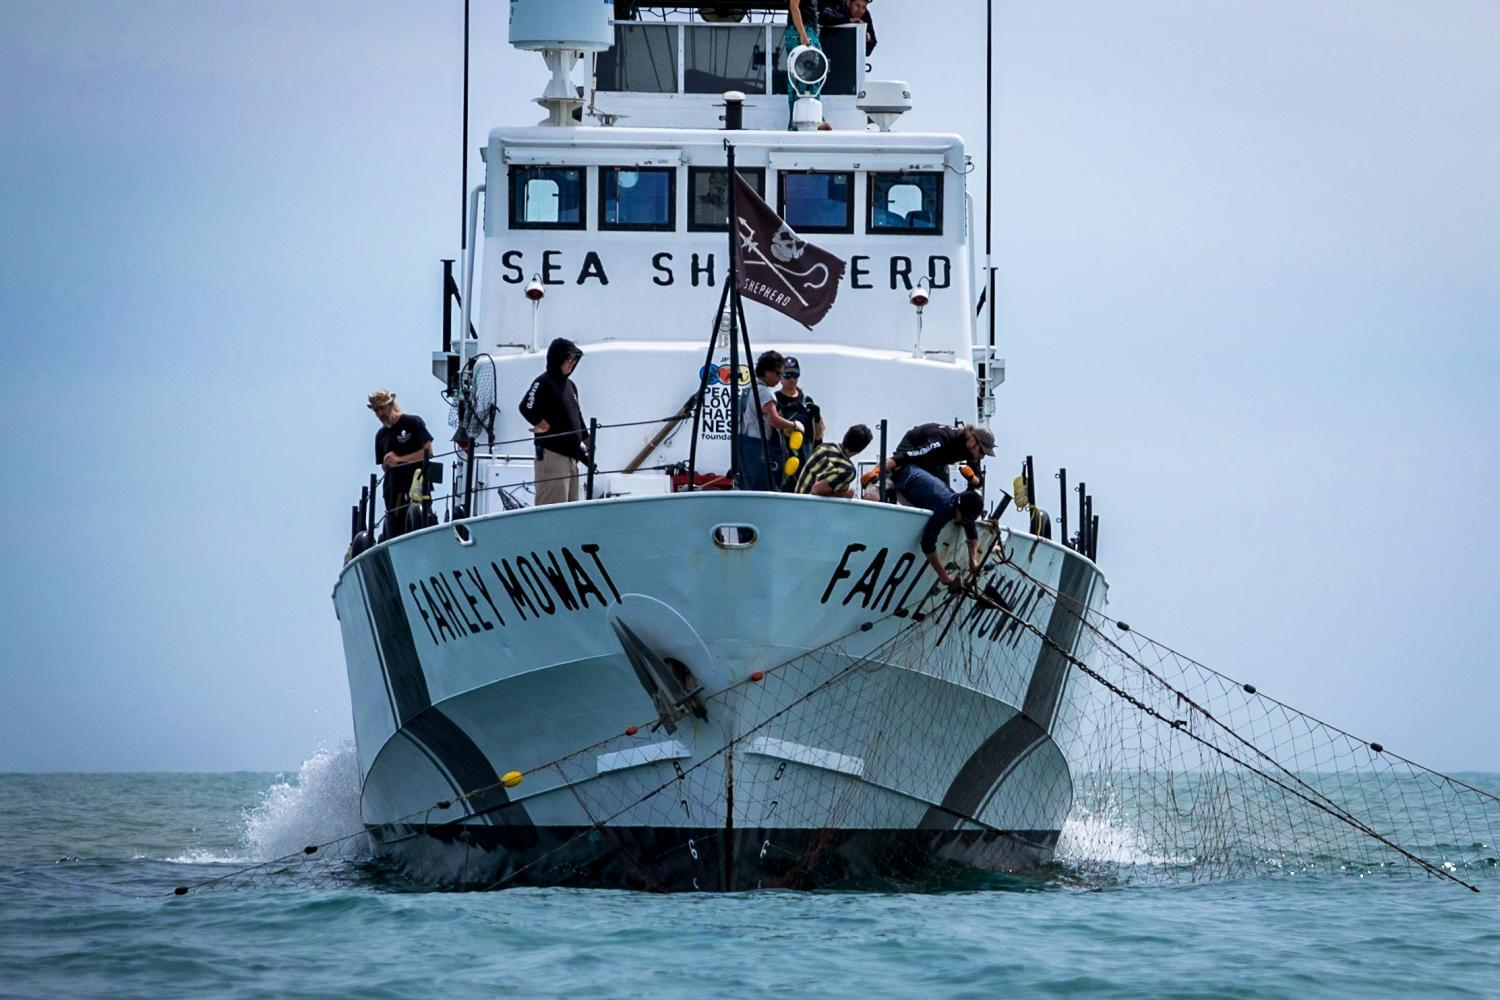 Sea Shepherd hauls in an illegal net